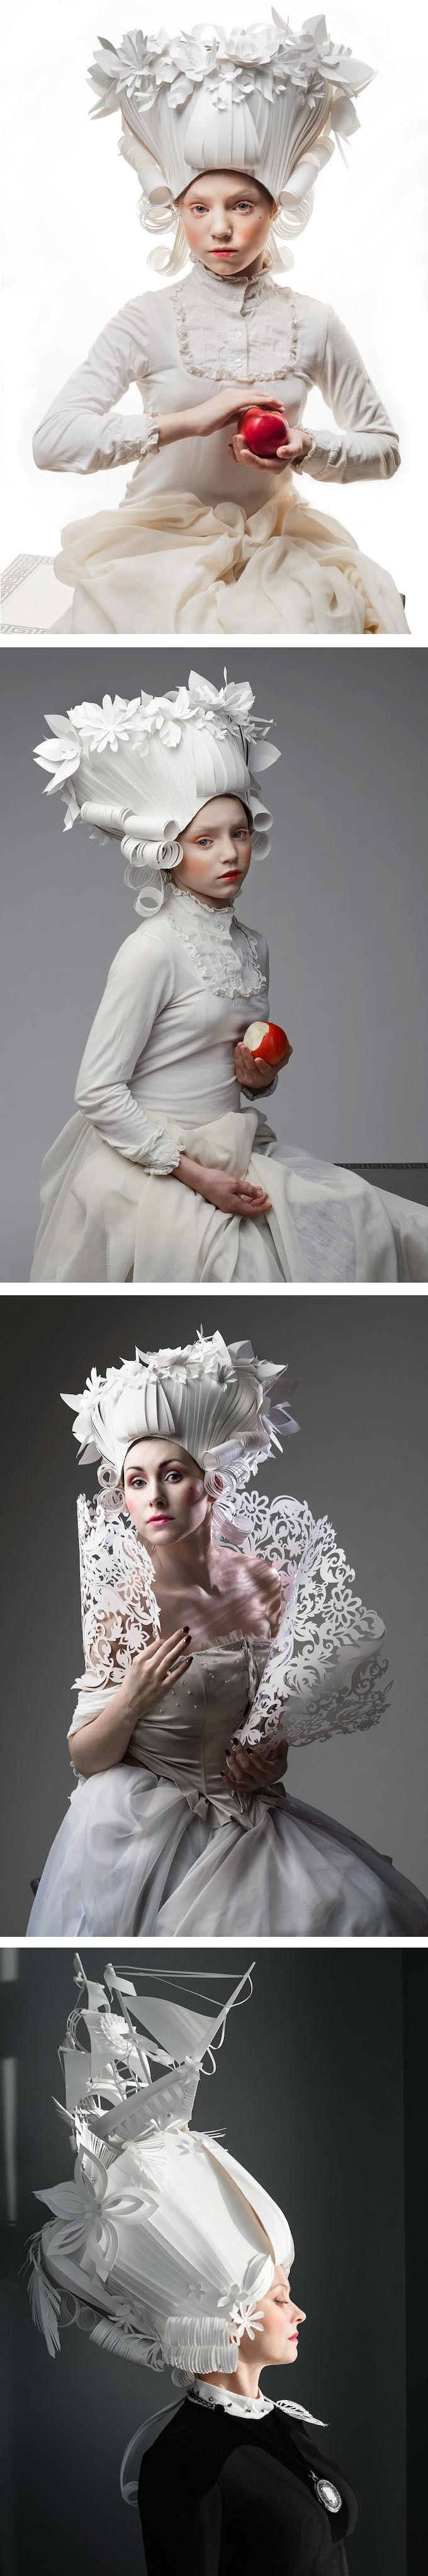 Historical wigs—especially those from the Baroque era—have always fascinated paper artist Asya Kozina. To celebrate them, she constructed some from paper.